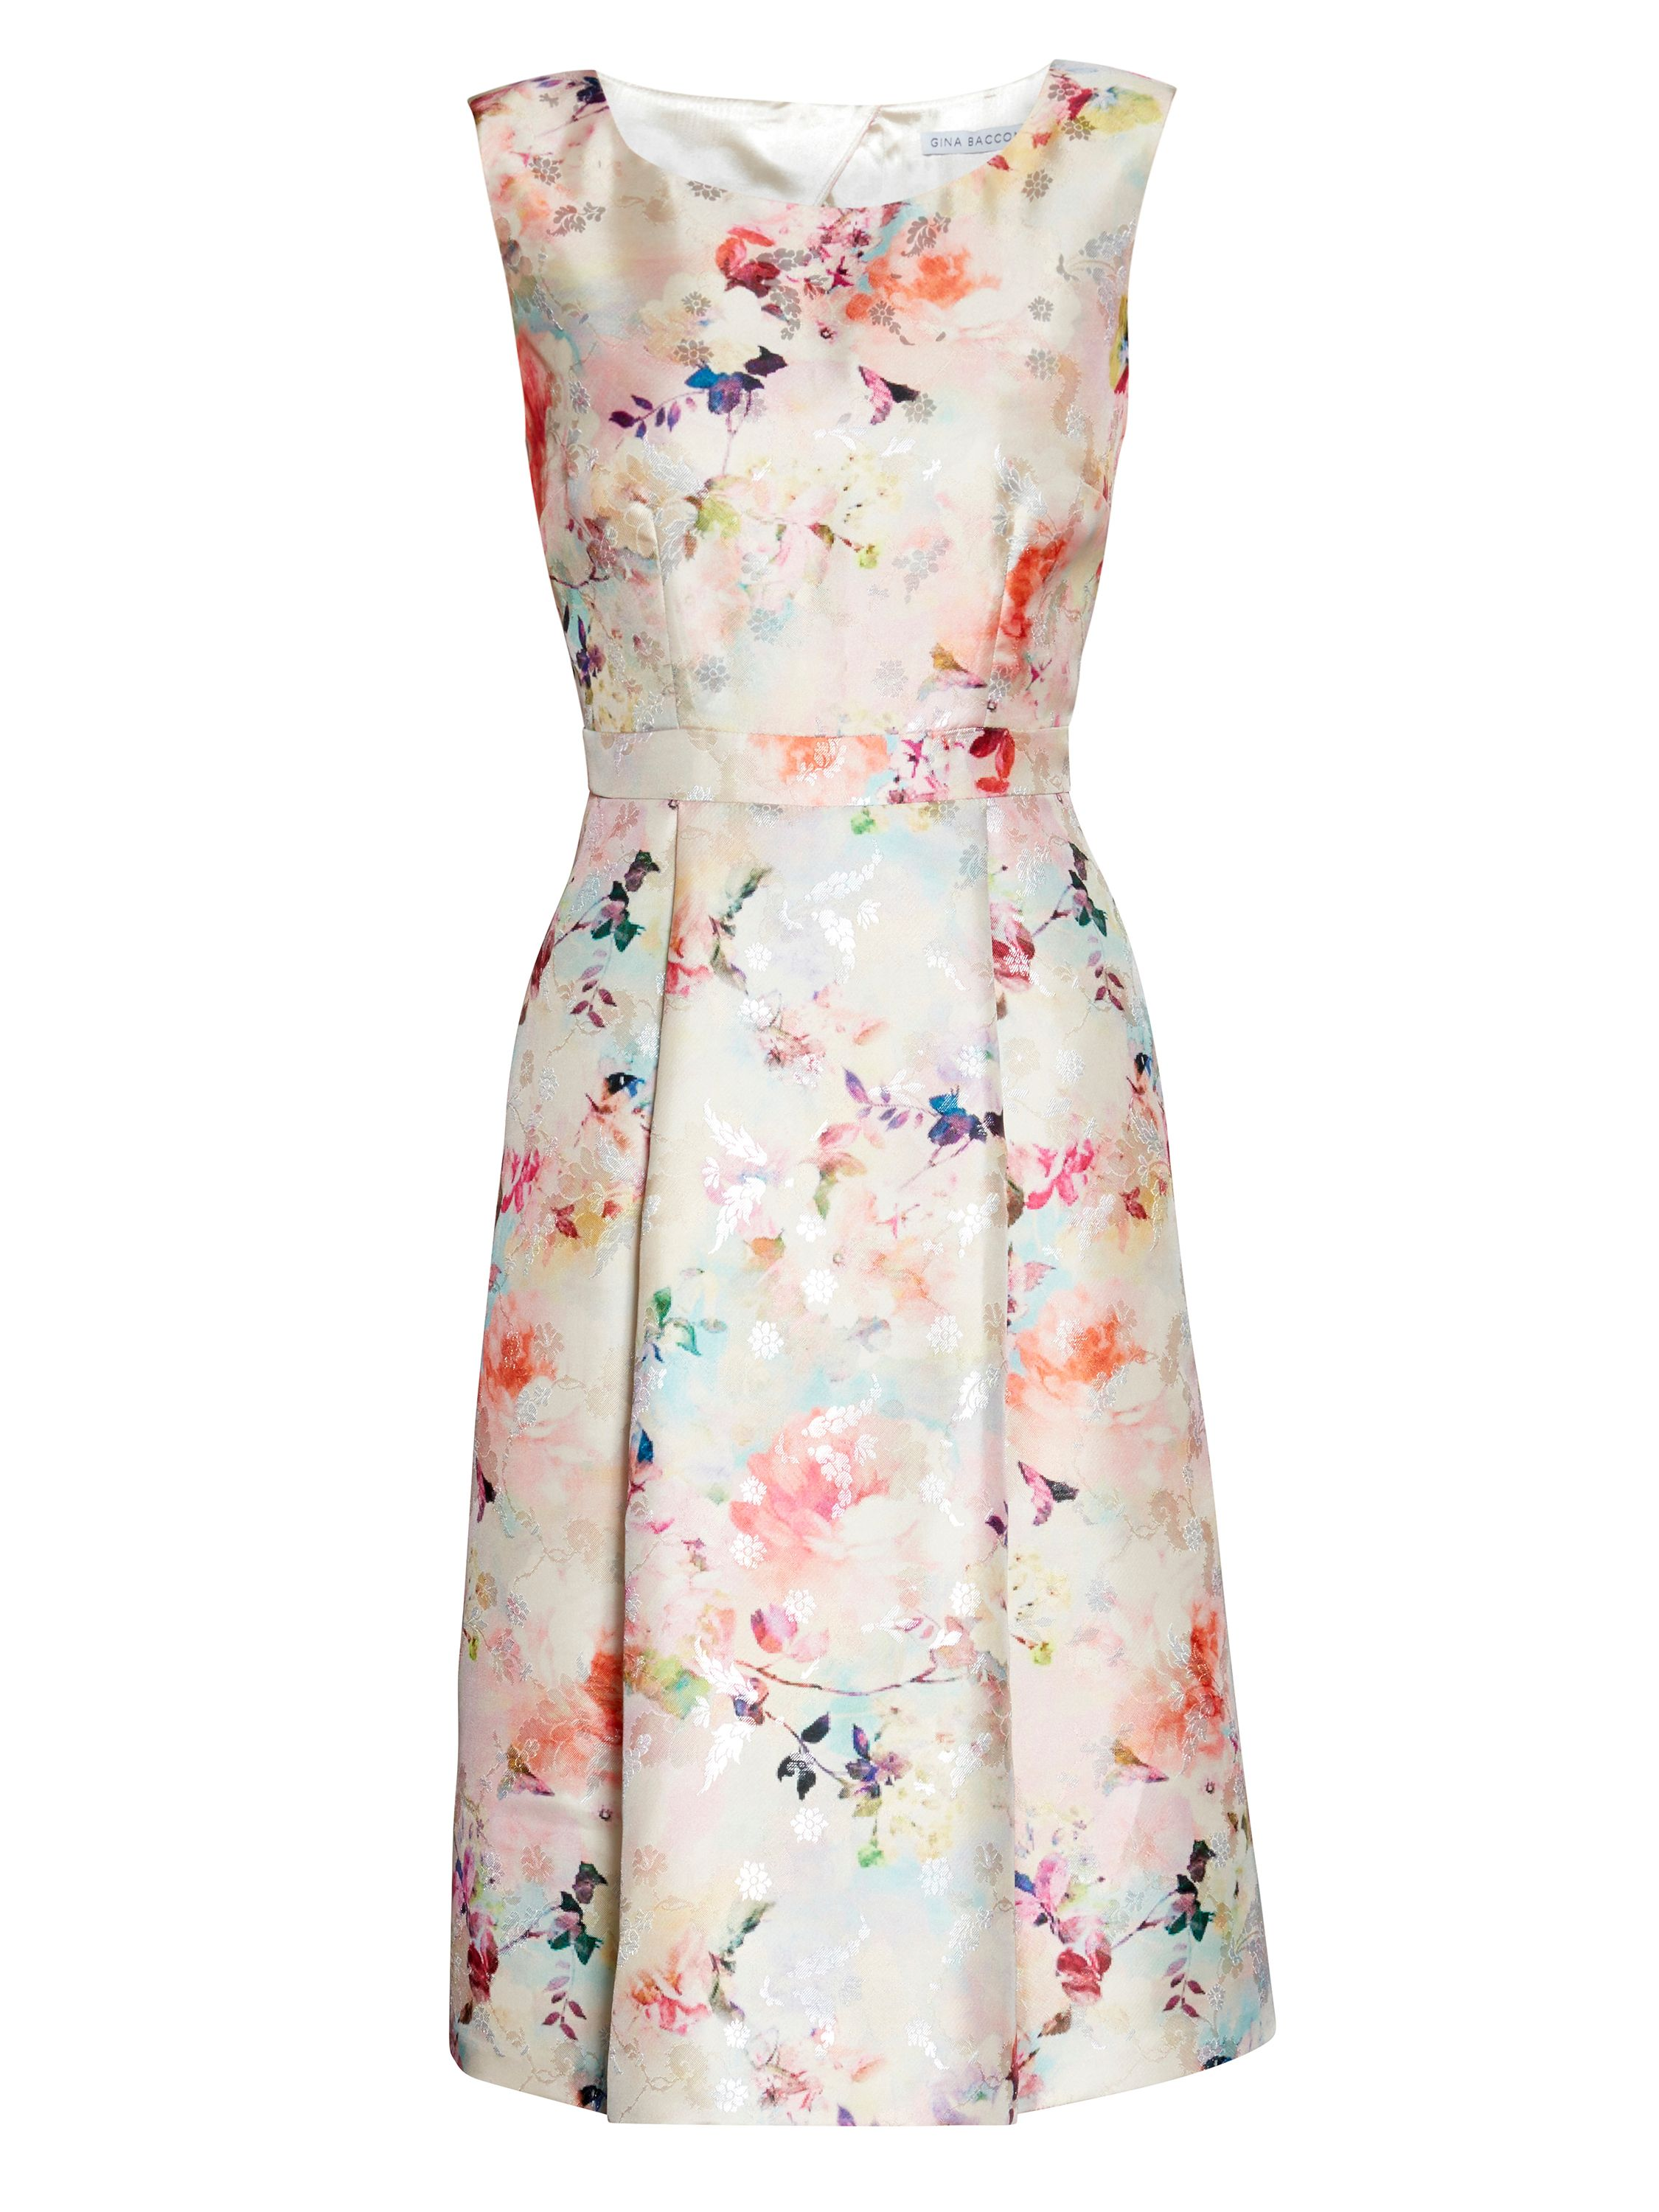 Gina Bacconi Jacquard Fit And Flare Dress, Pink